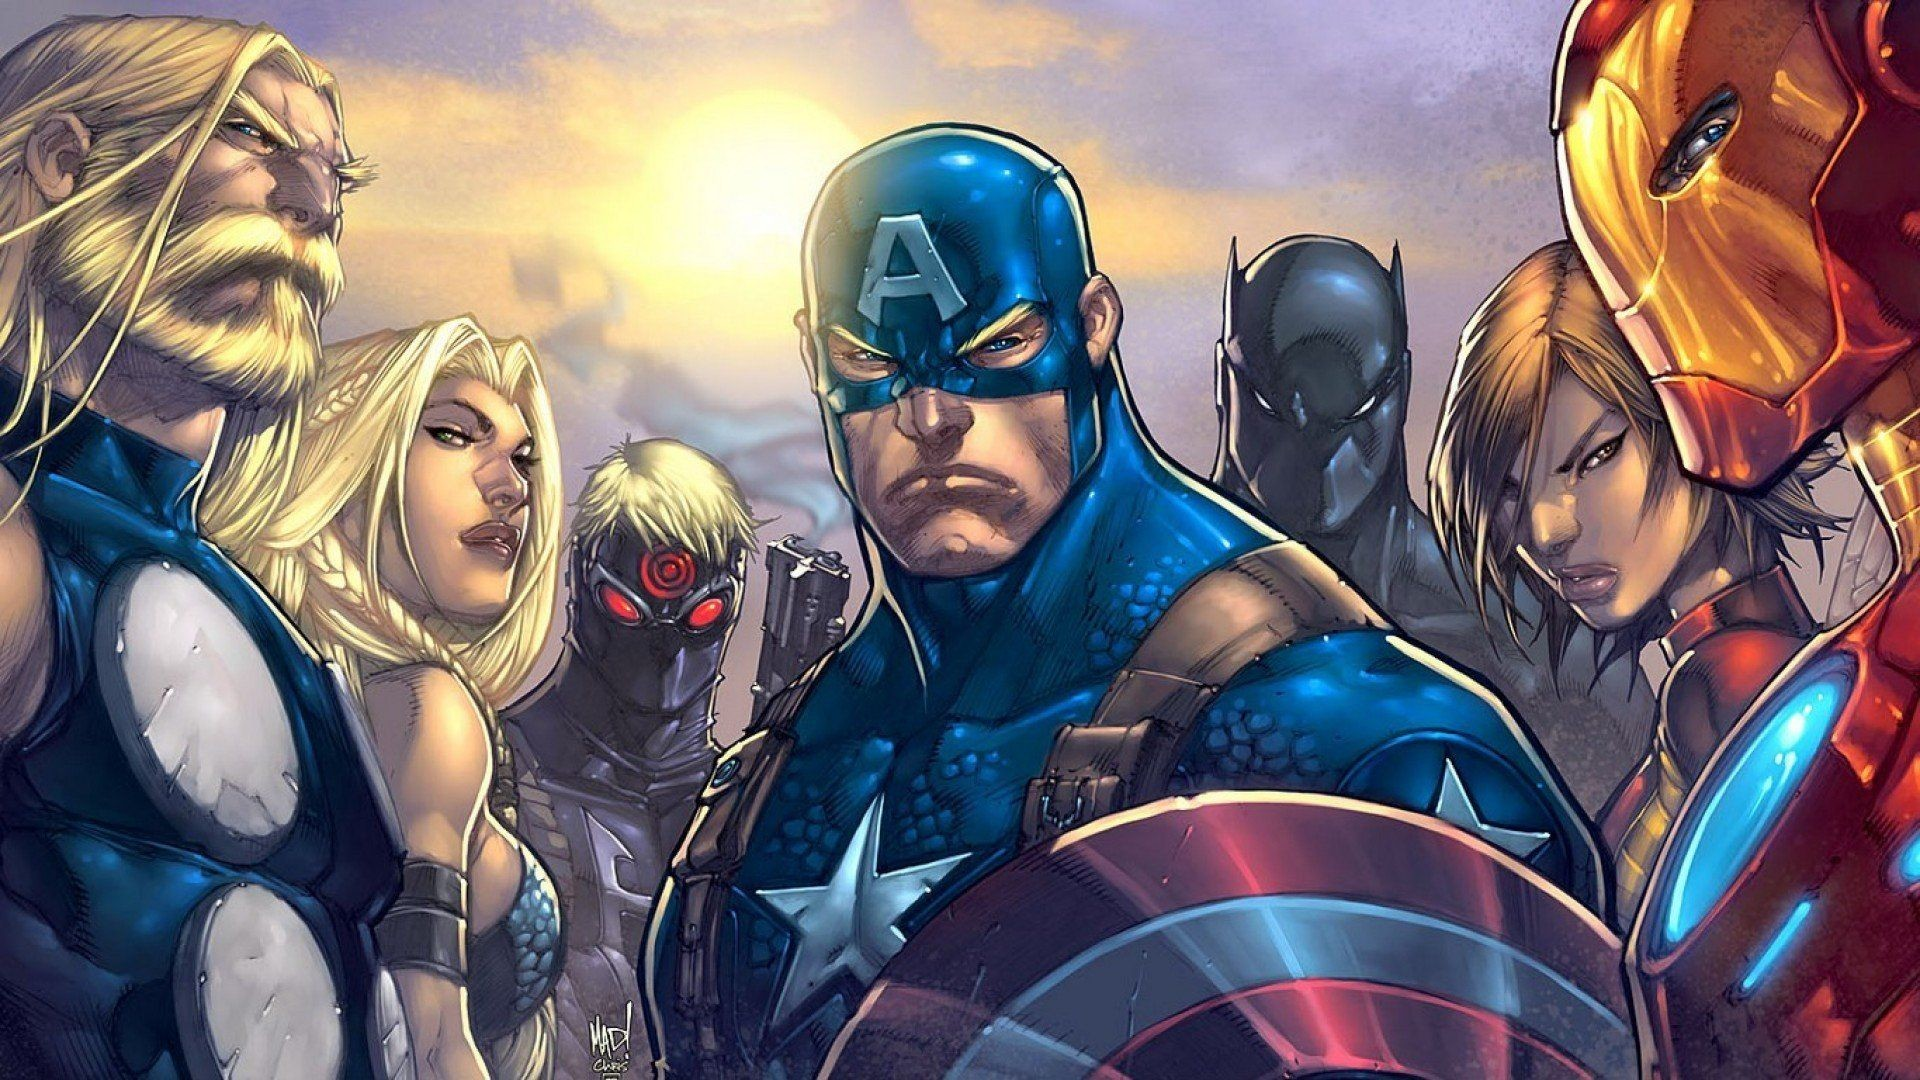 Res: 1920x1080, captain-america-avengers-wallpaper-ultimates-marvel-comics-wallpapers.